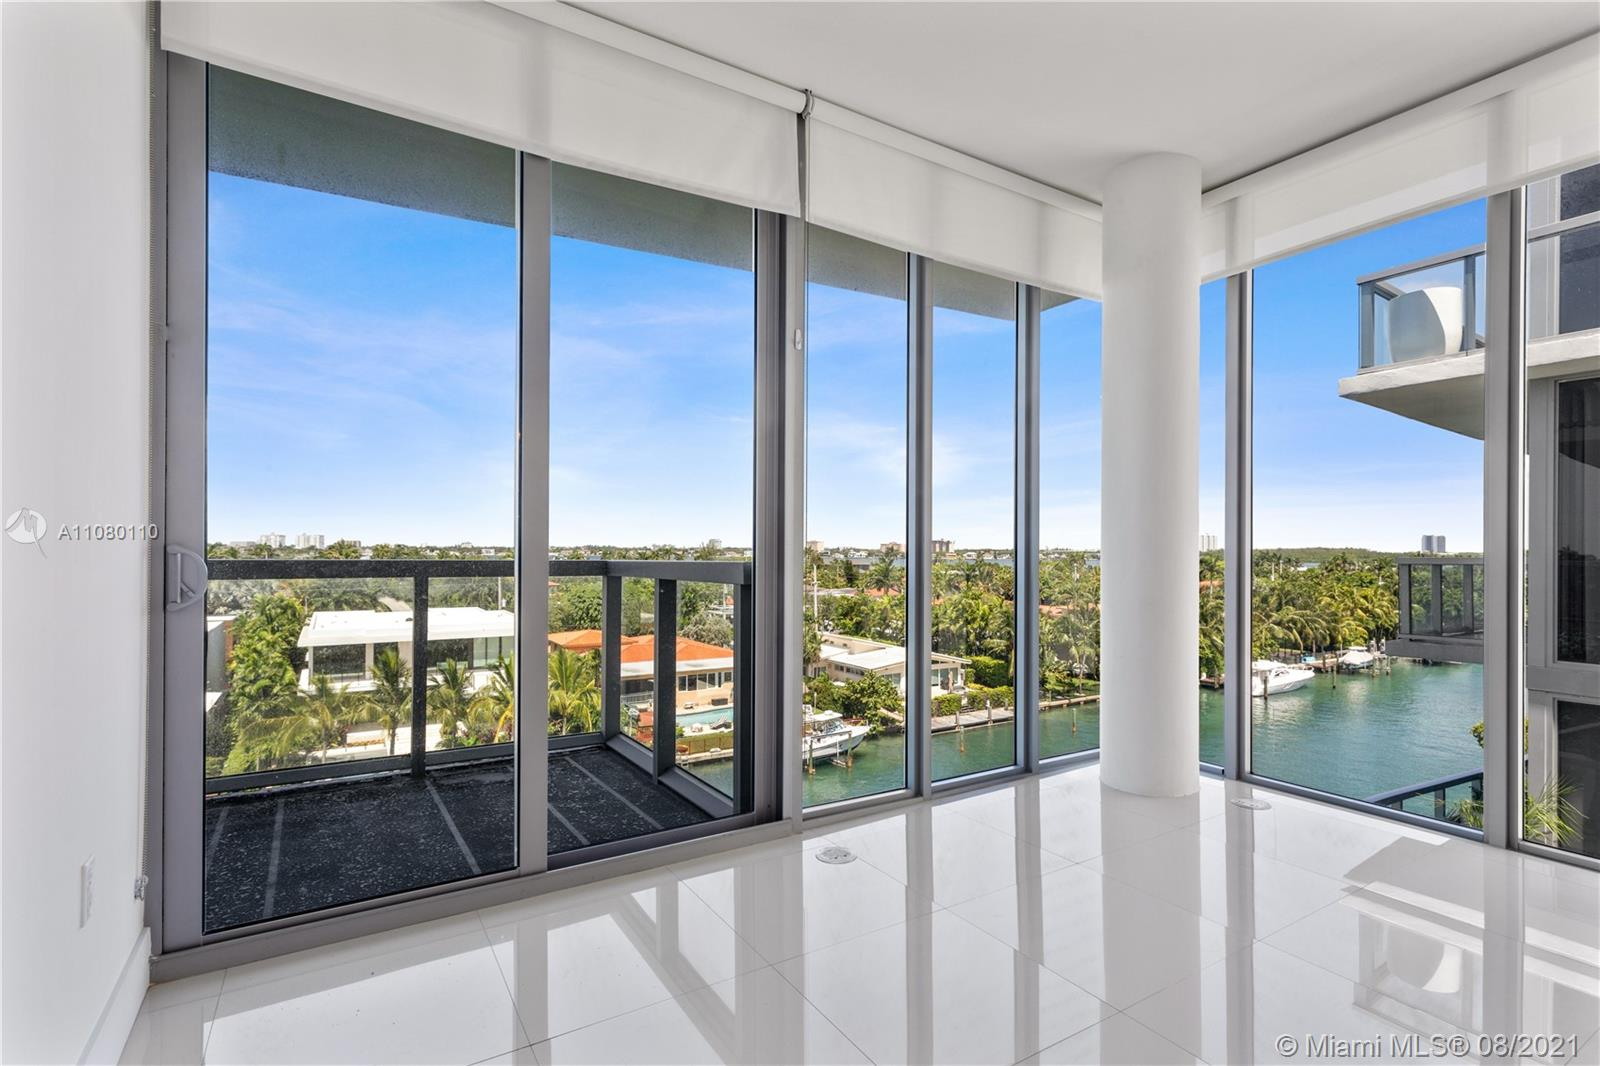 """BEST CORNER UNIT-2BEDS/2BTH+DEN. VIEWS BAY/WATER. BEST 2BEDS/2BTHS + DEN WATER VIEW and comes with 1 Assigned Marina Slip of 24"""". Boutique building 8 floors and 57 residences. 2car parking spaces & 1 assigned storage, Kitchen with European-style cabinetry, polished granite counter tops, marble floors & jacuzzi in bathrooms, White ceramic floors thru-out the apartment. Gorgeous views From the Rooftop pool towards bay and sunsets. Gym & Marina. Bal Harbor island is surrounded by Biscayne Bay, Indian Creek, Town of Surfside, and Bal Harbor. Walking Distance to Beach, restaurants and to the renowned Bal Harbor Shops. Best Public schools: Ruth K. B., Harbor K-8, Nautilus Middle School, Miami Beach Senior High School.NO WEEKEND SHOWINGS PER BUILDING RULES, NO SHORT, NO AIRBNB."""